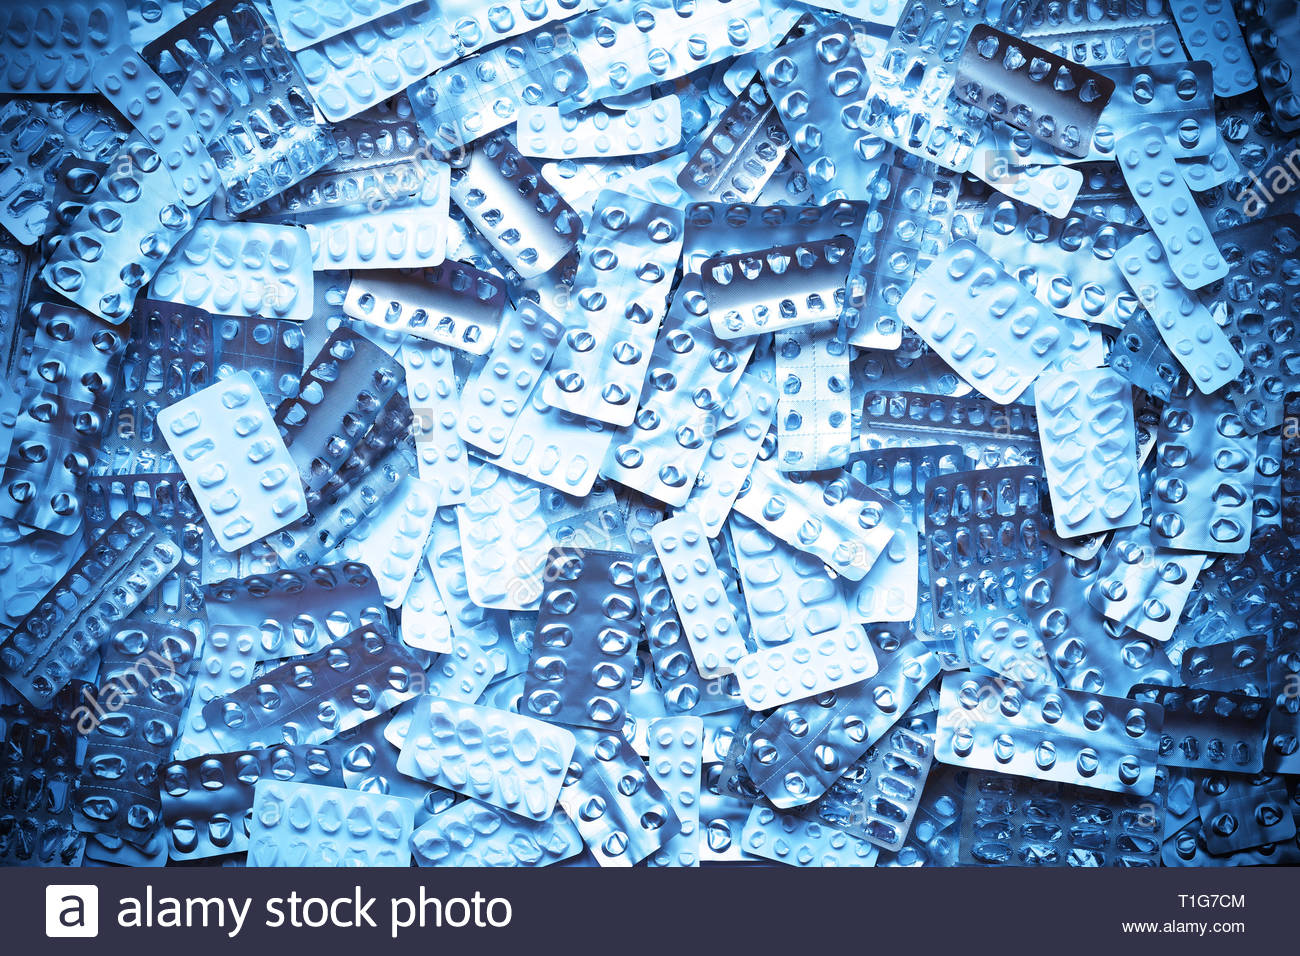 Many empty blister packages on white background, drug overdose, misuse or addiction concept Stock Photo